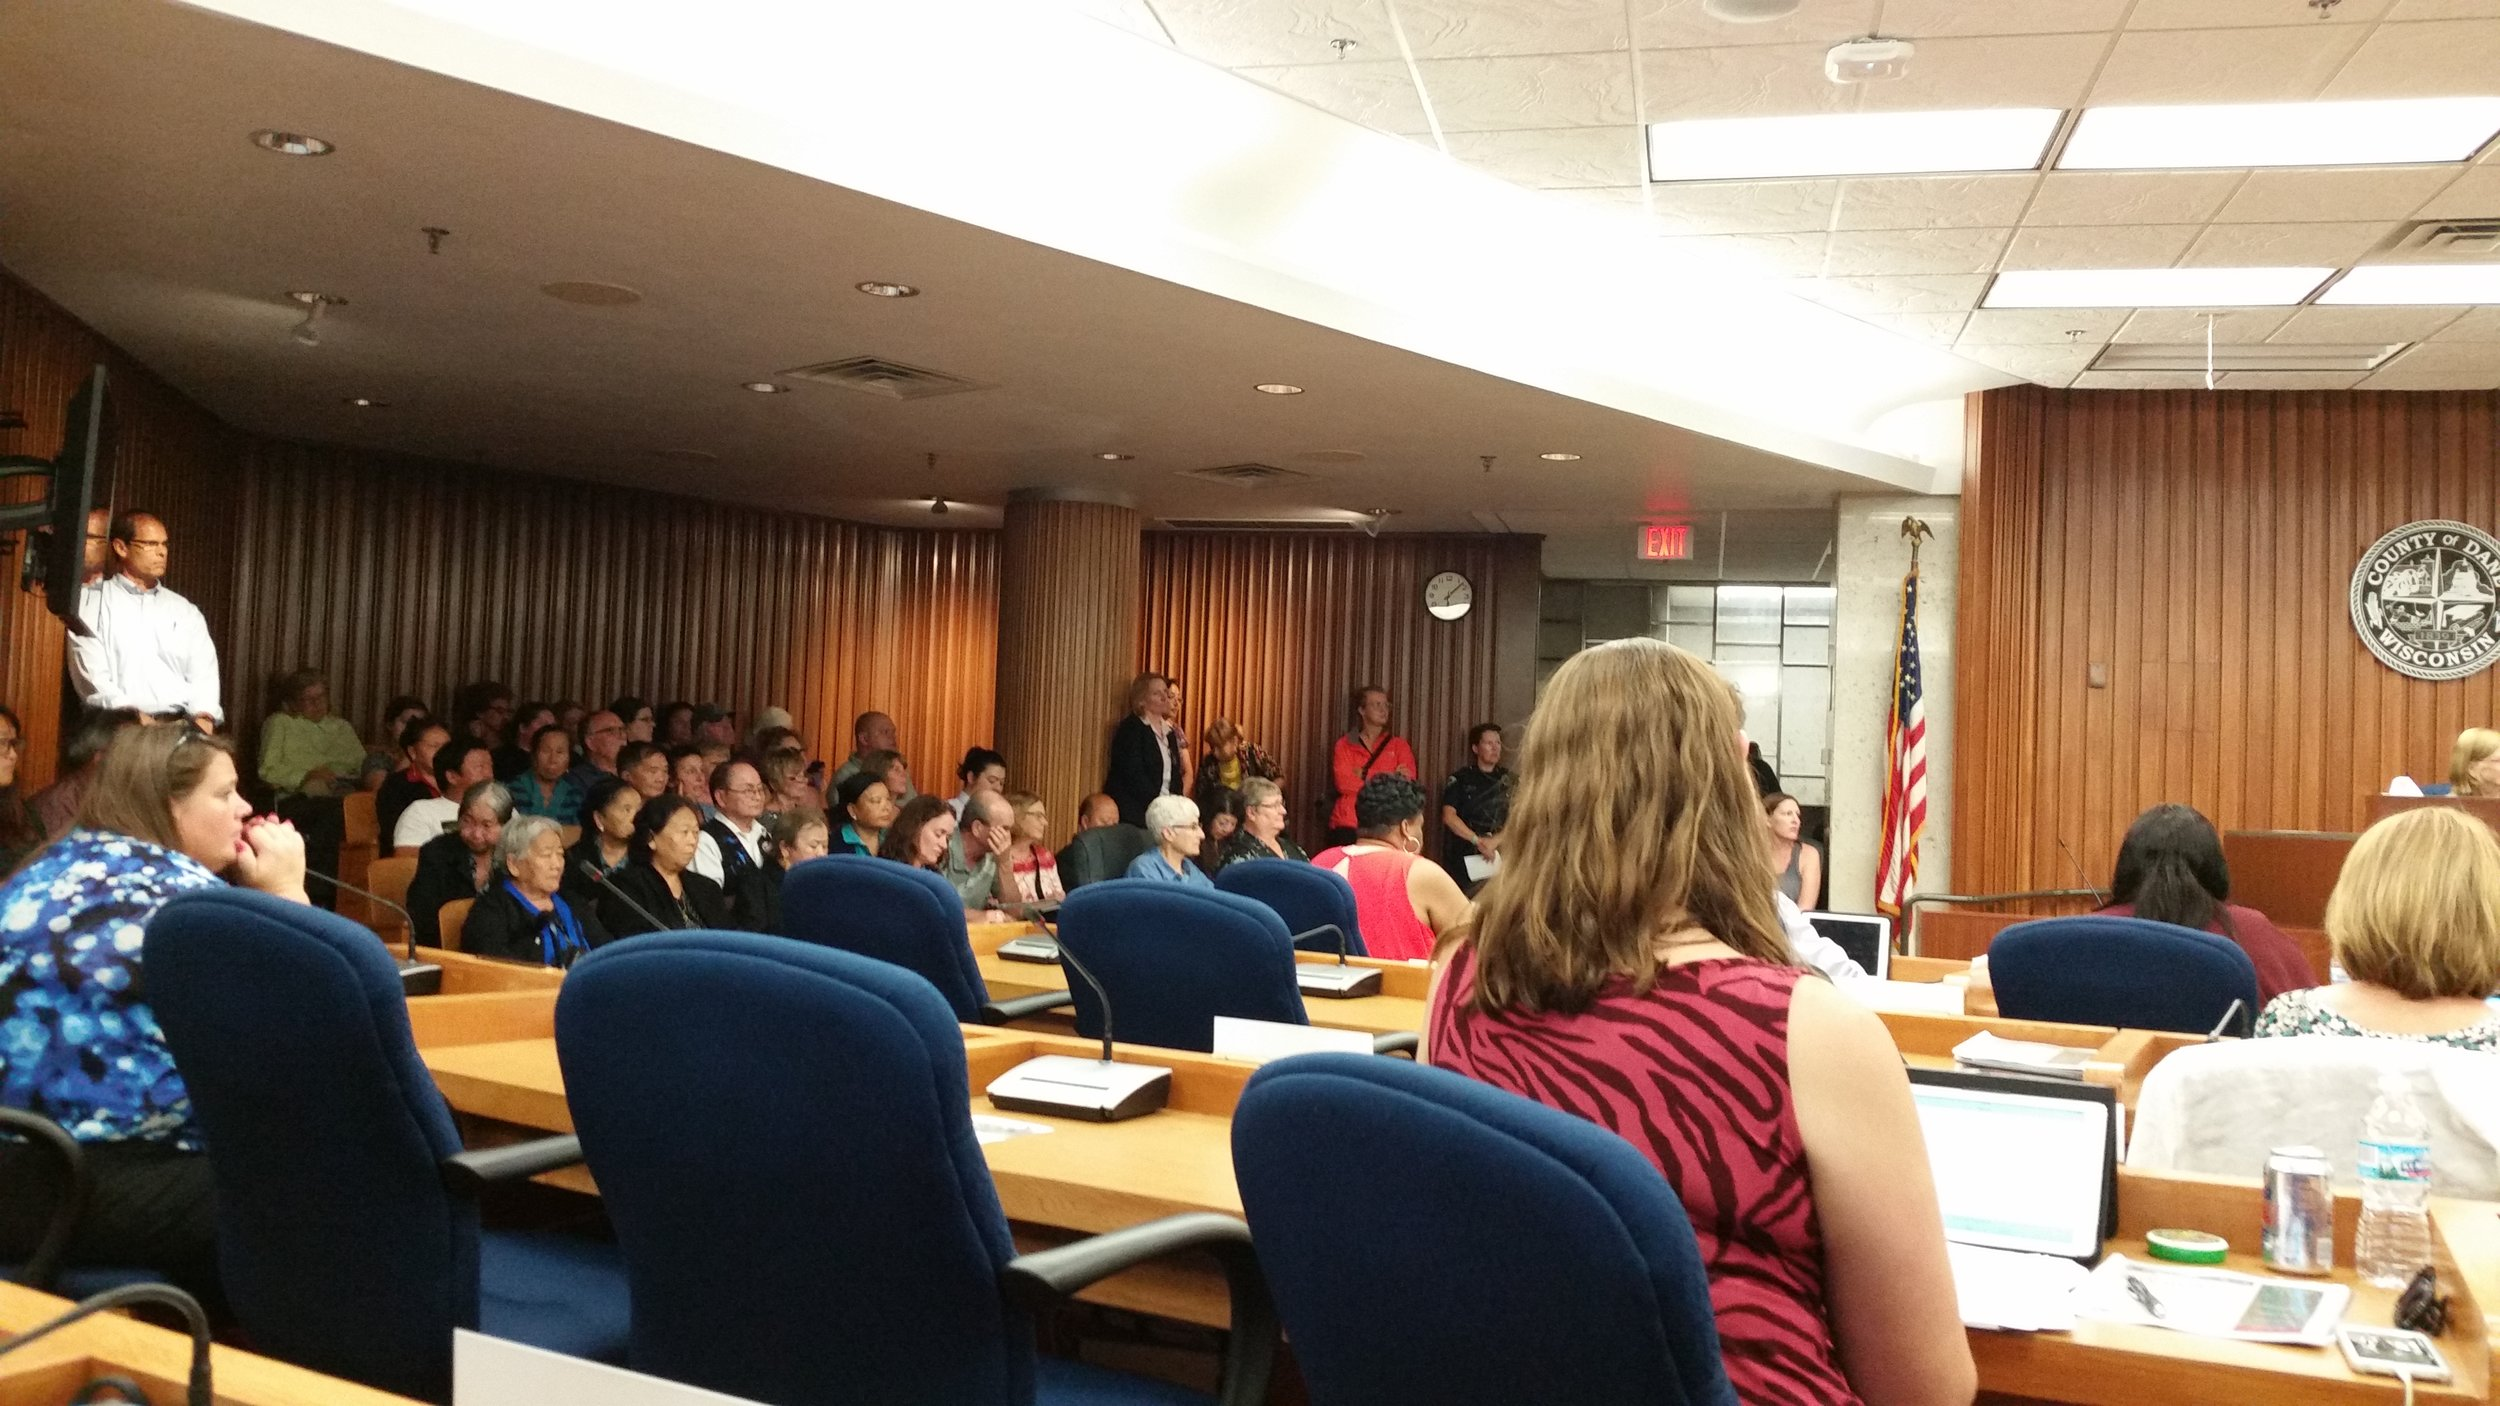 Packed house for budget hearings on September 12th.